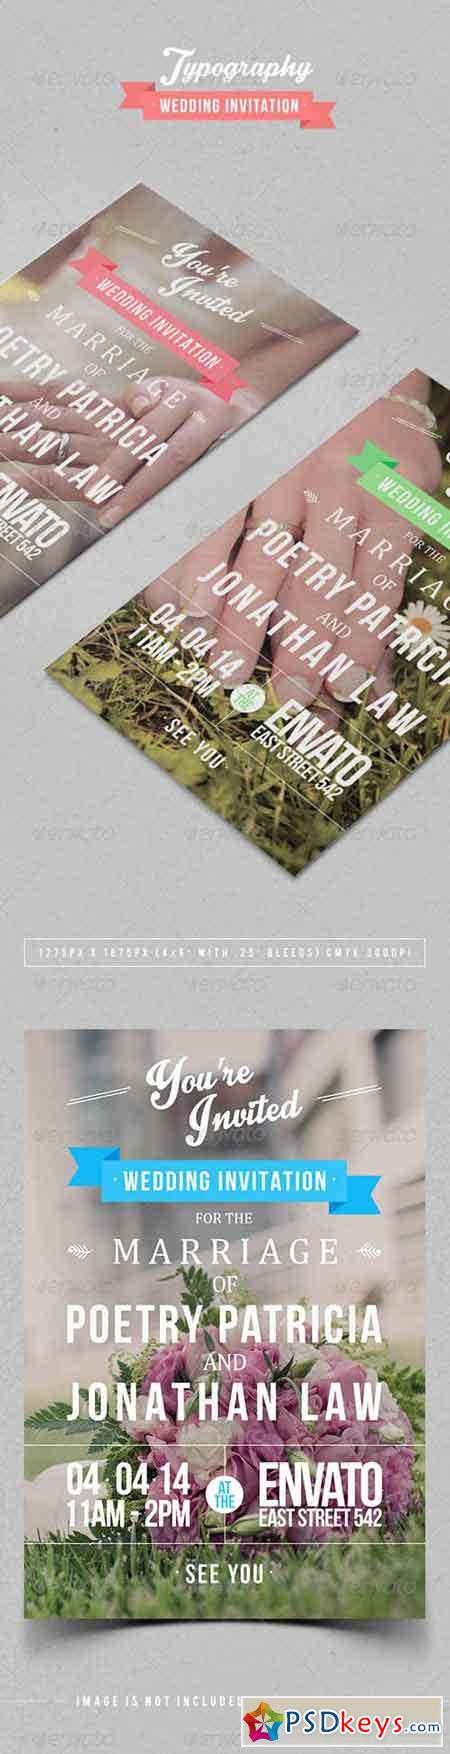 Typography Wedding Invitation 7104631